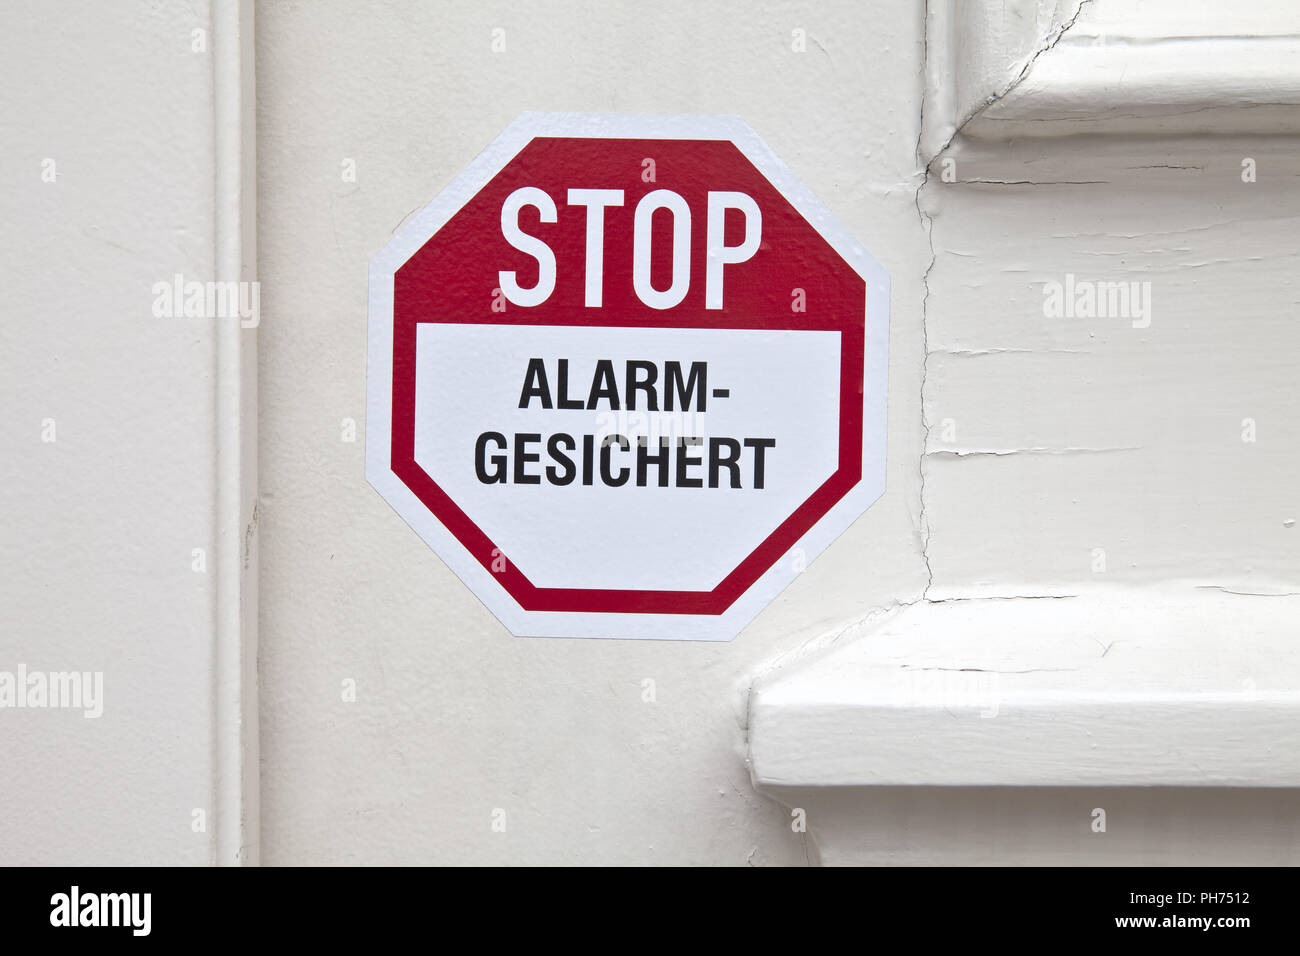 Sticker on the door stop alarm - Stock Image